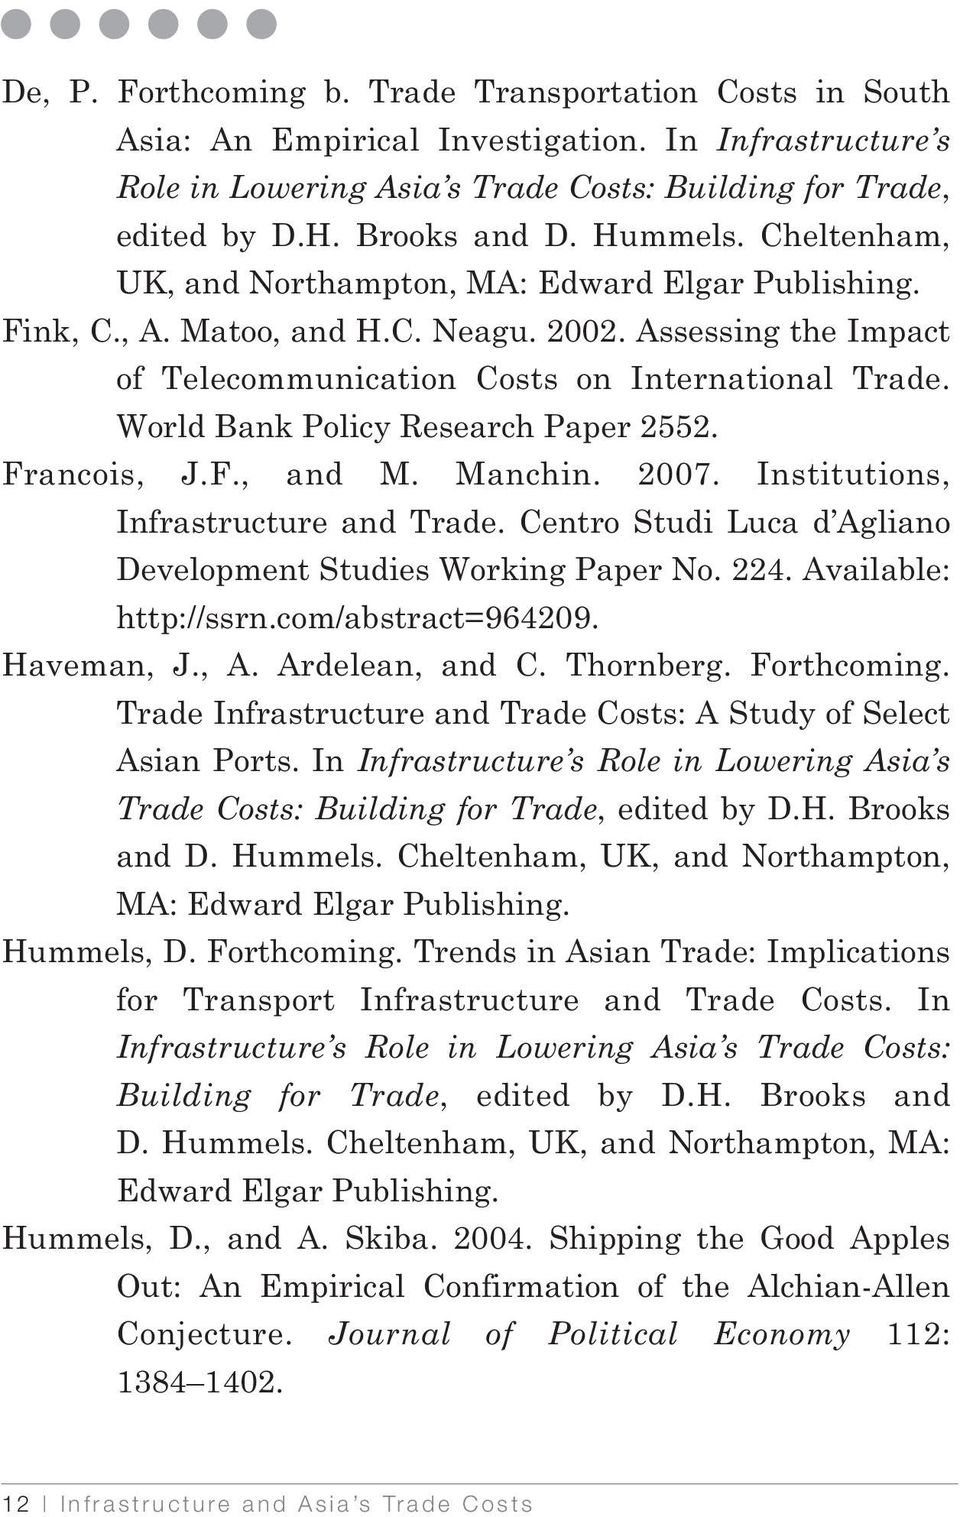 World Bank Policy Research Paper 2552. Francois, J.F., and M. Manchin. 2007. Institutions, Infrastructure and Trade. Centro Studi Luca d Agliano Development Studies Working Paper No. 224.